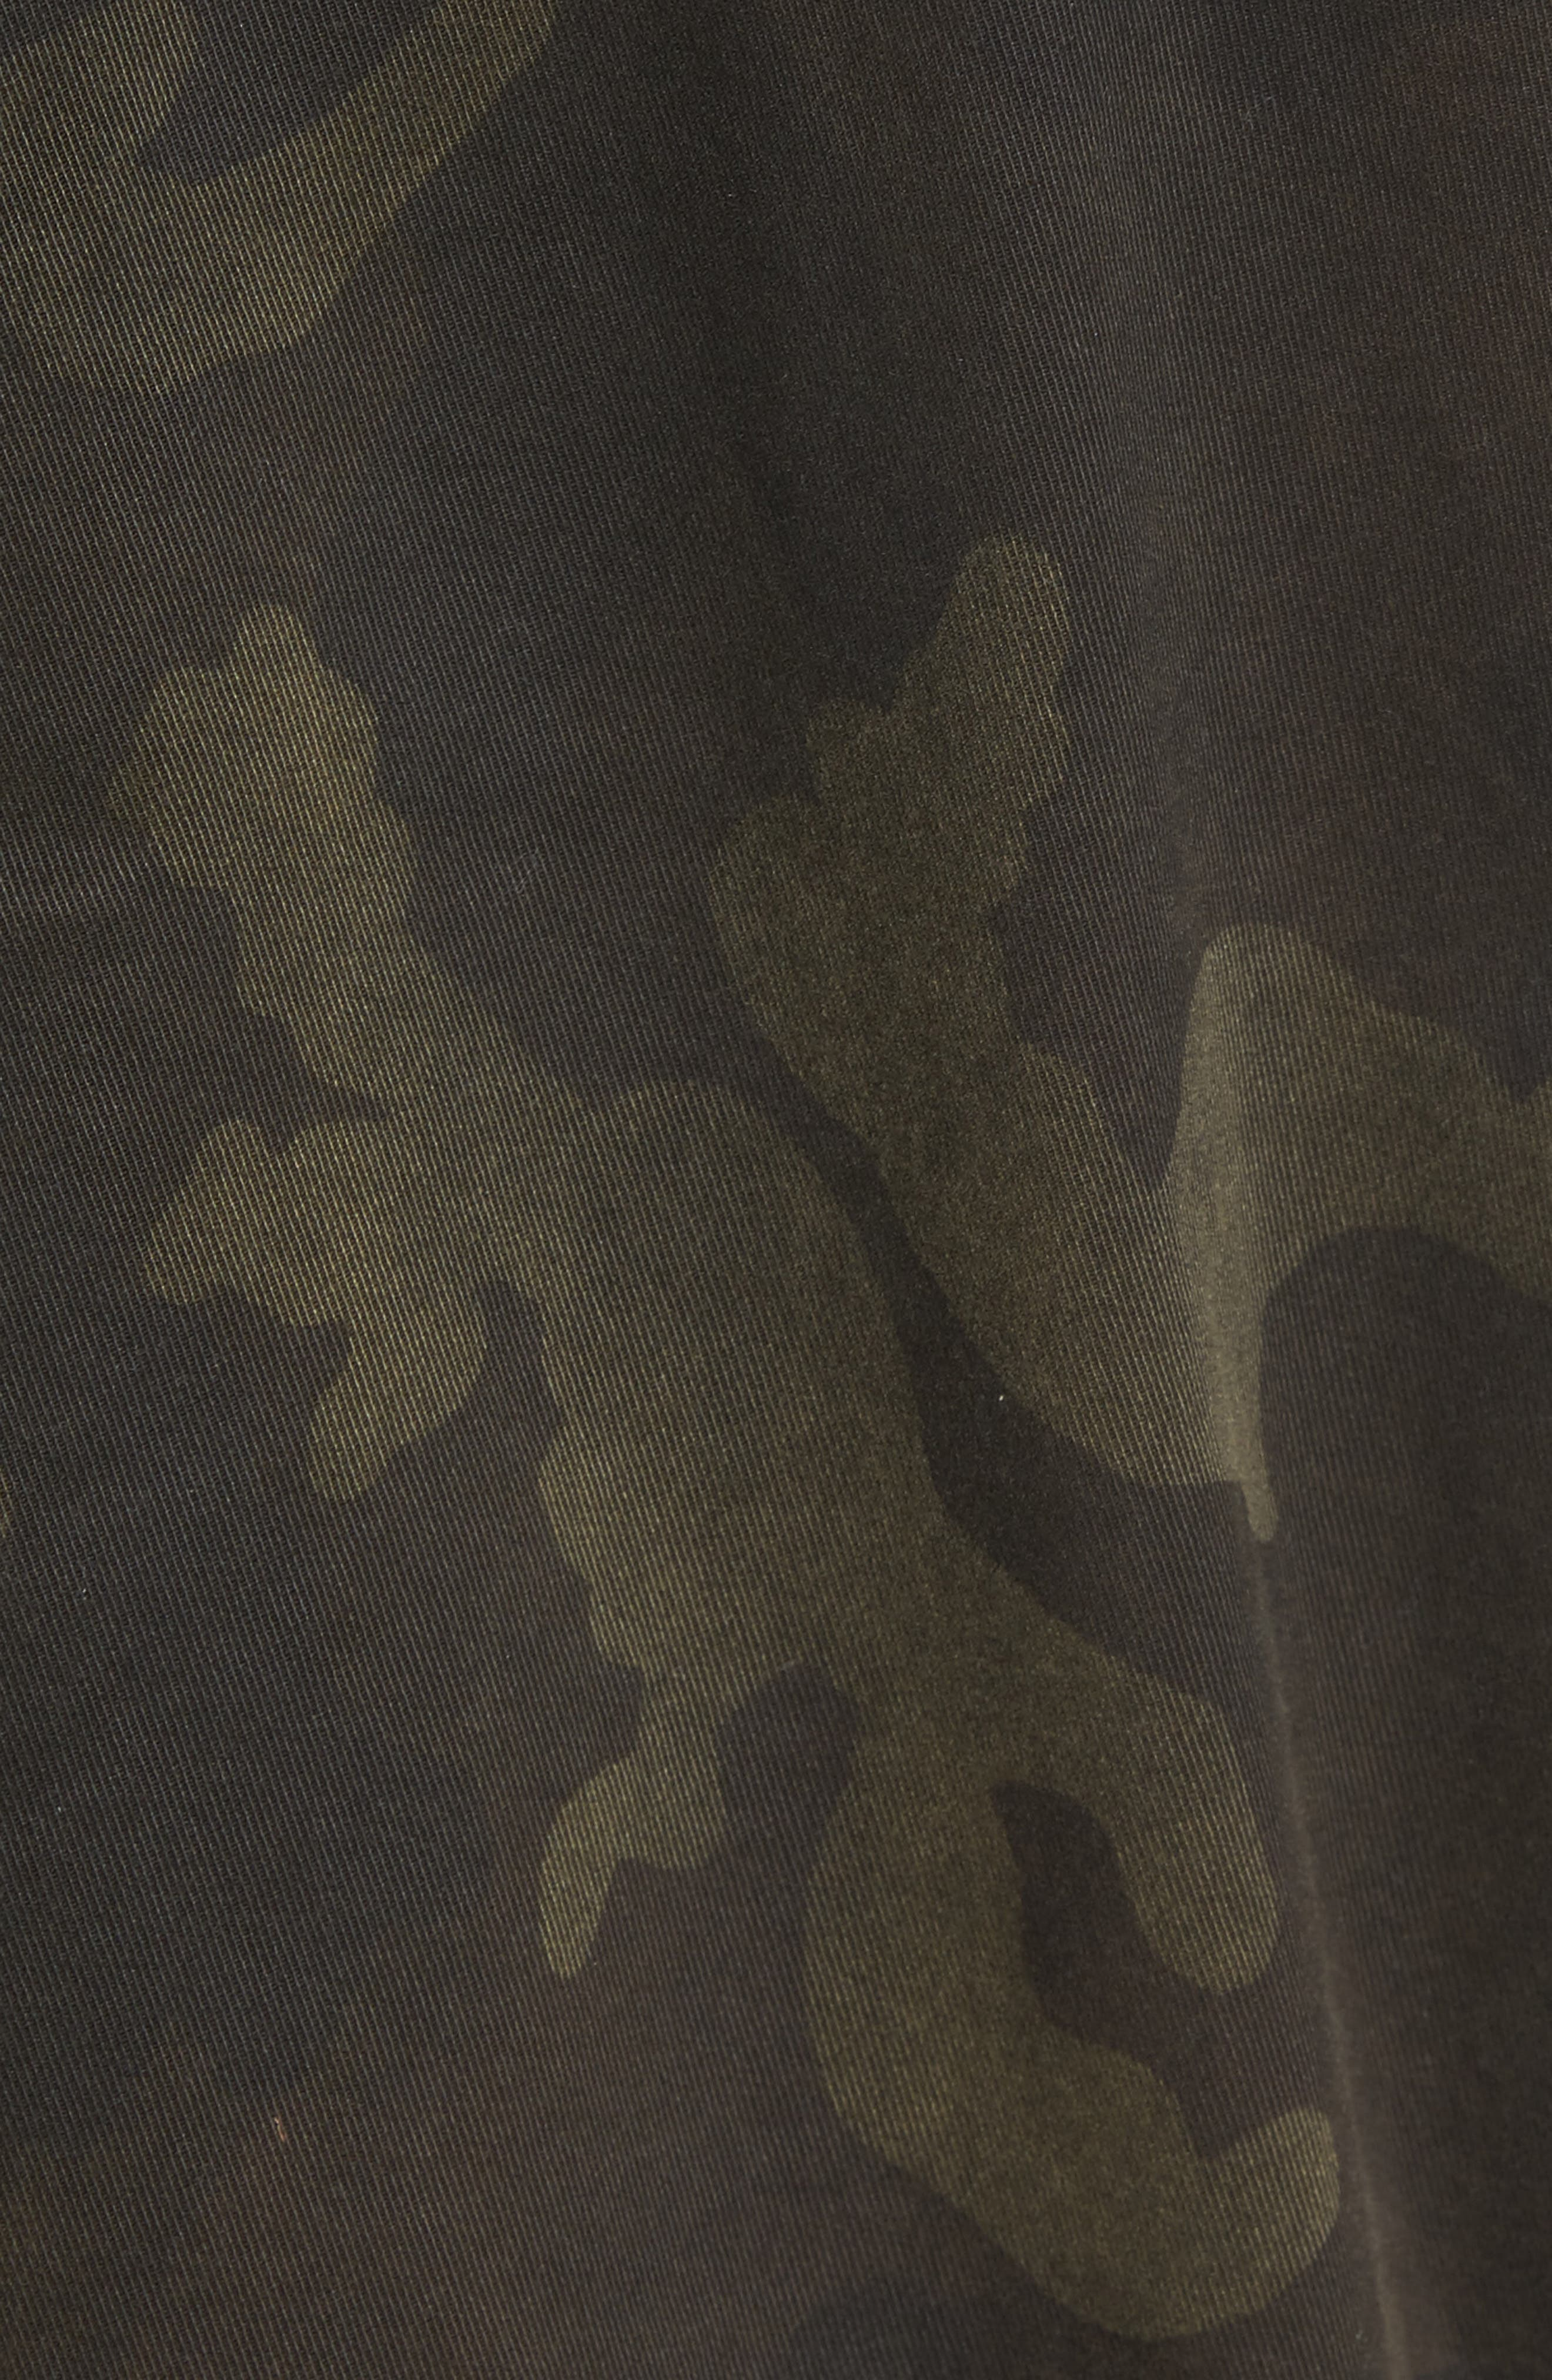 Camo Anorak,                             Alternate thumbnail 5, color,                             Military Green Camo